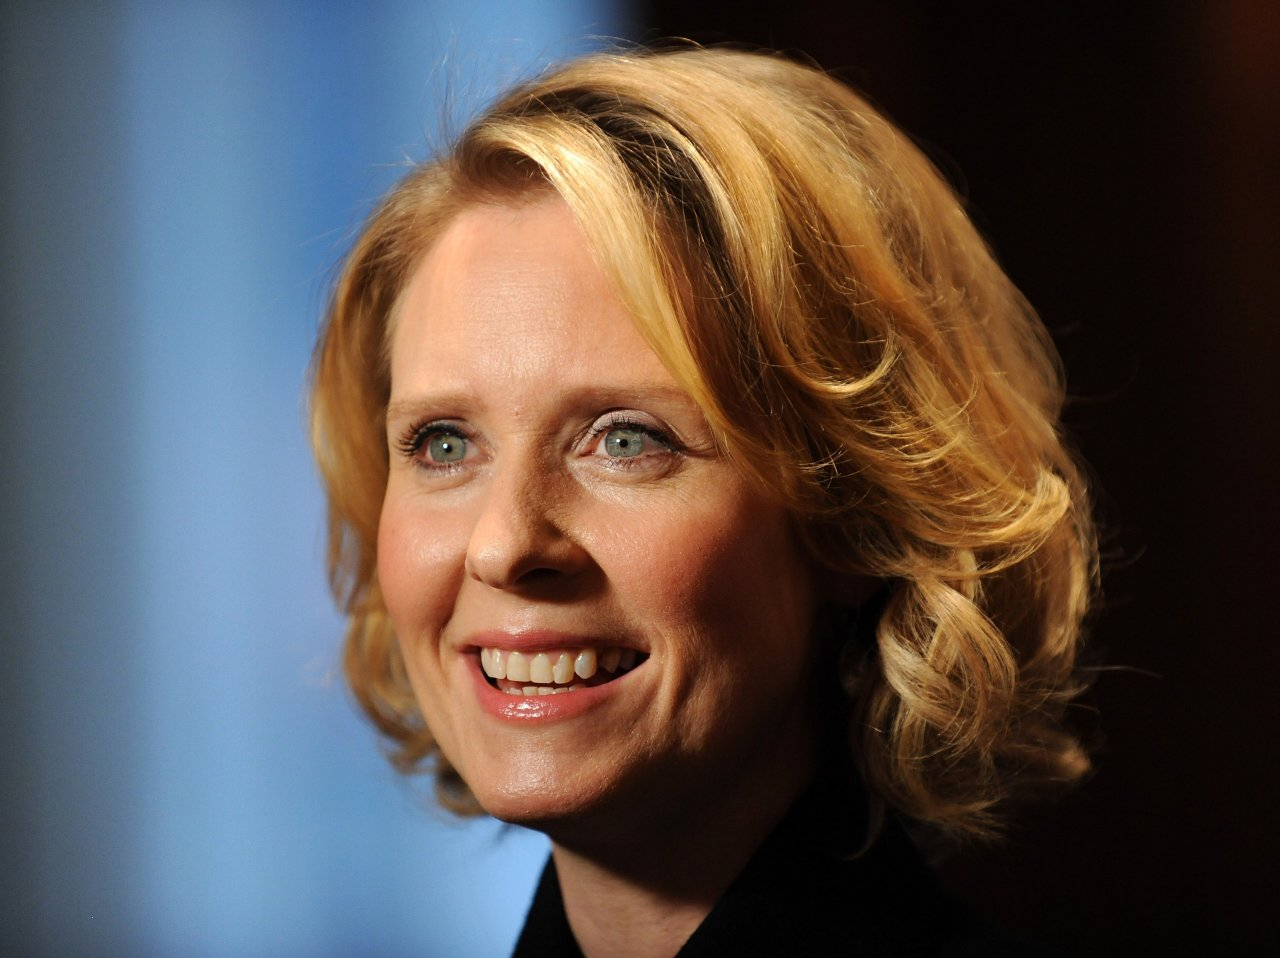 cynthia nixon wallpaper - photo #4